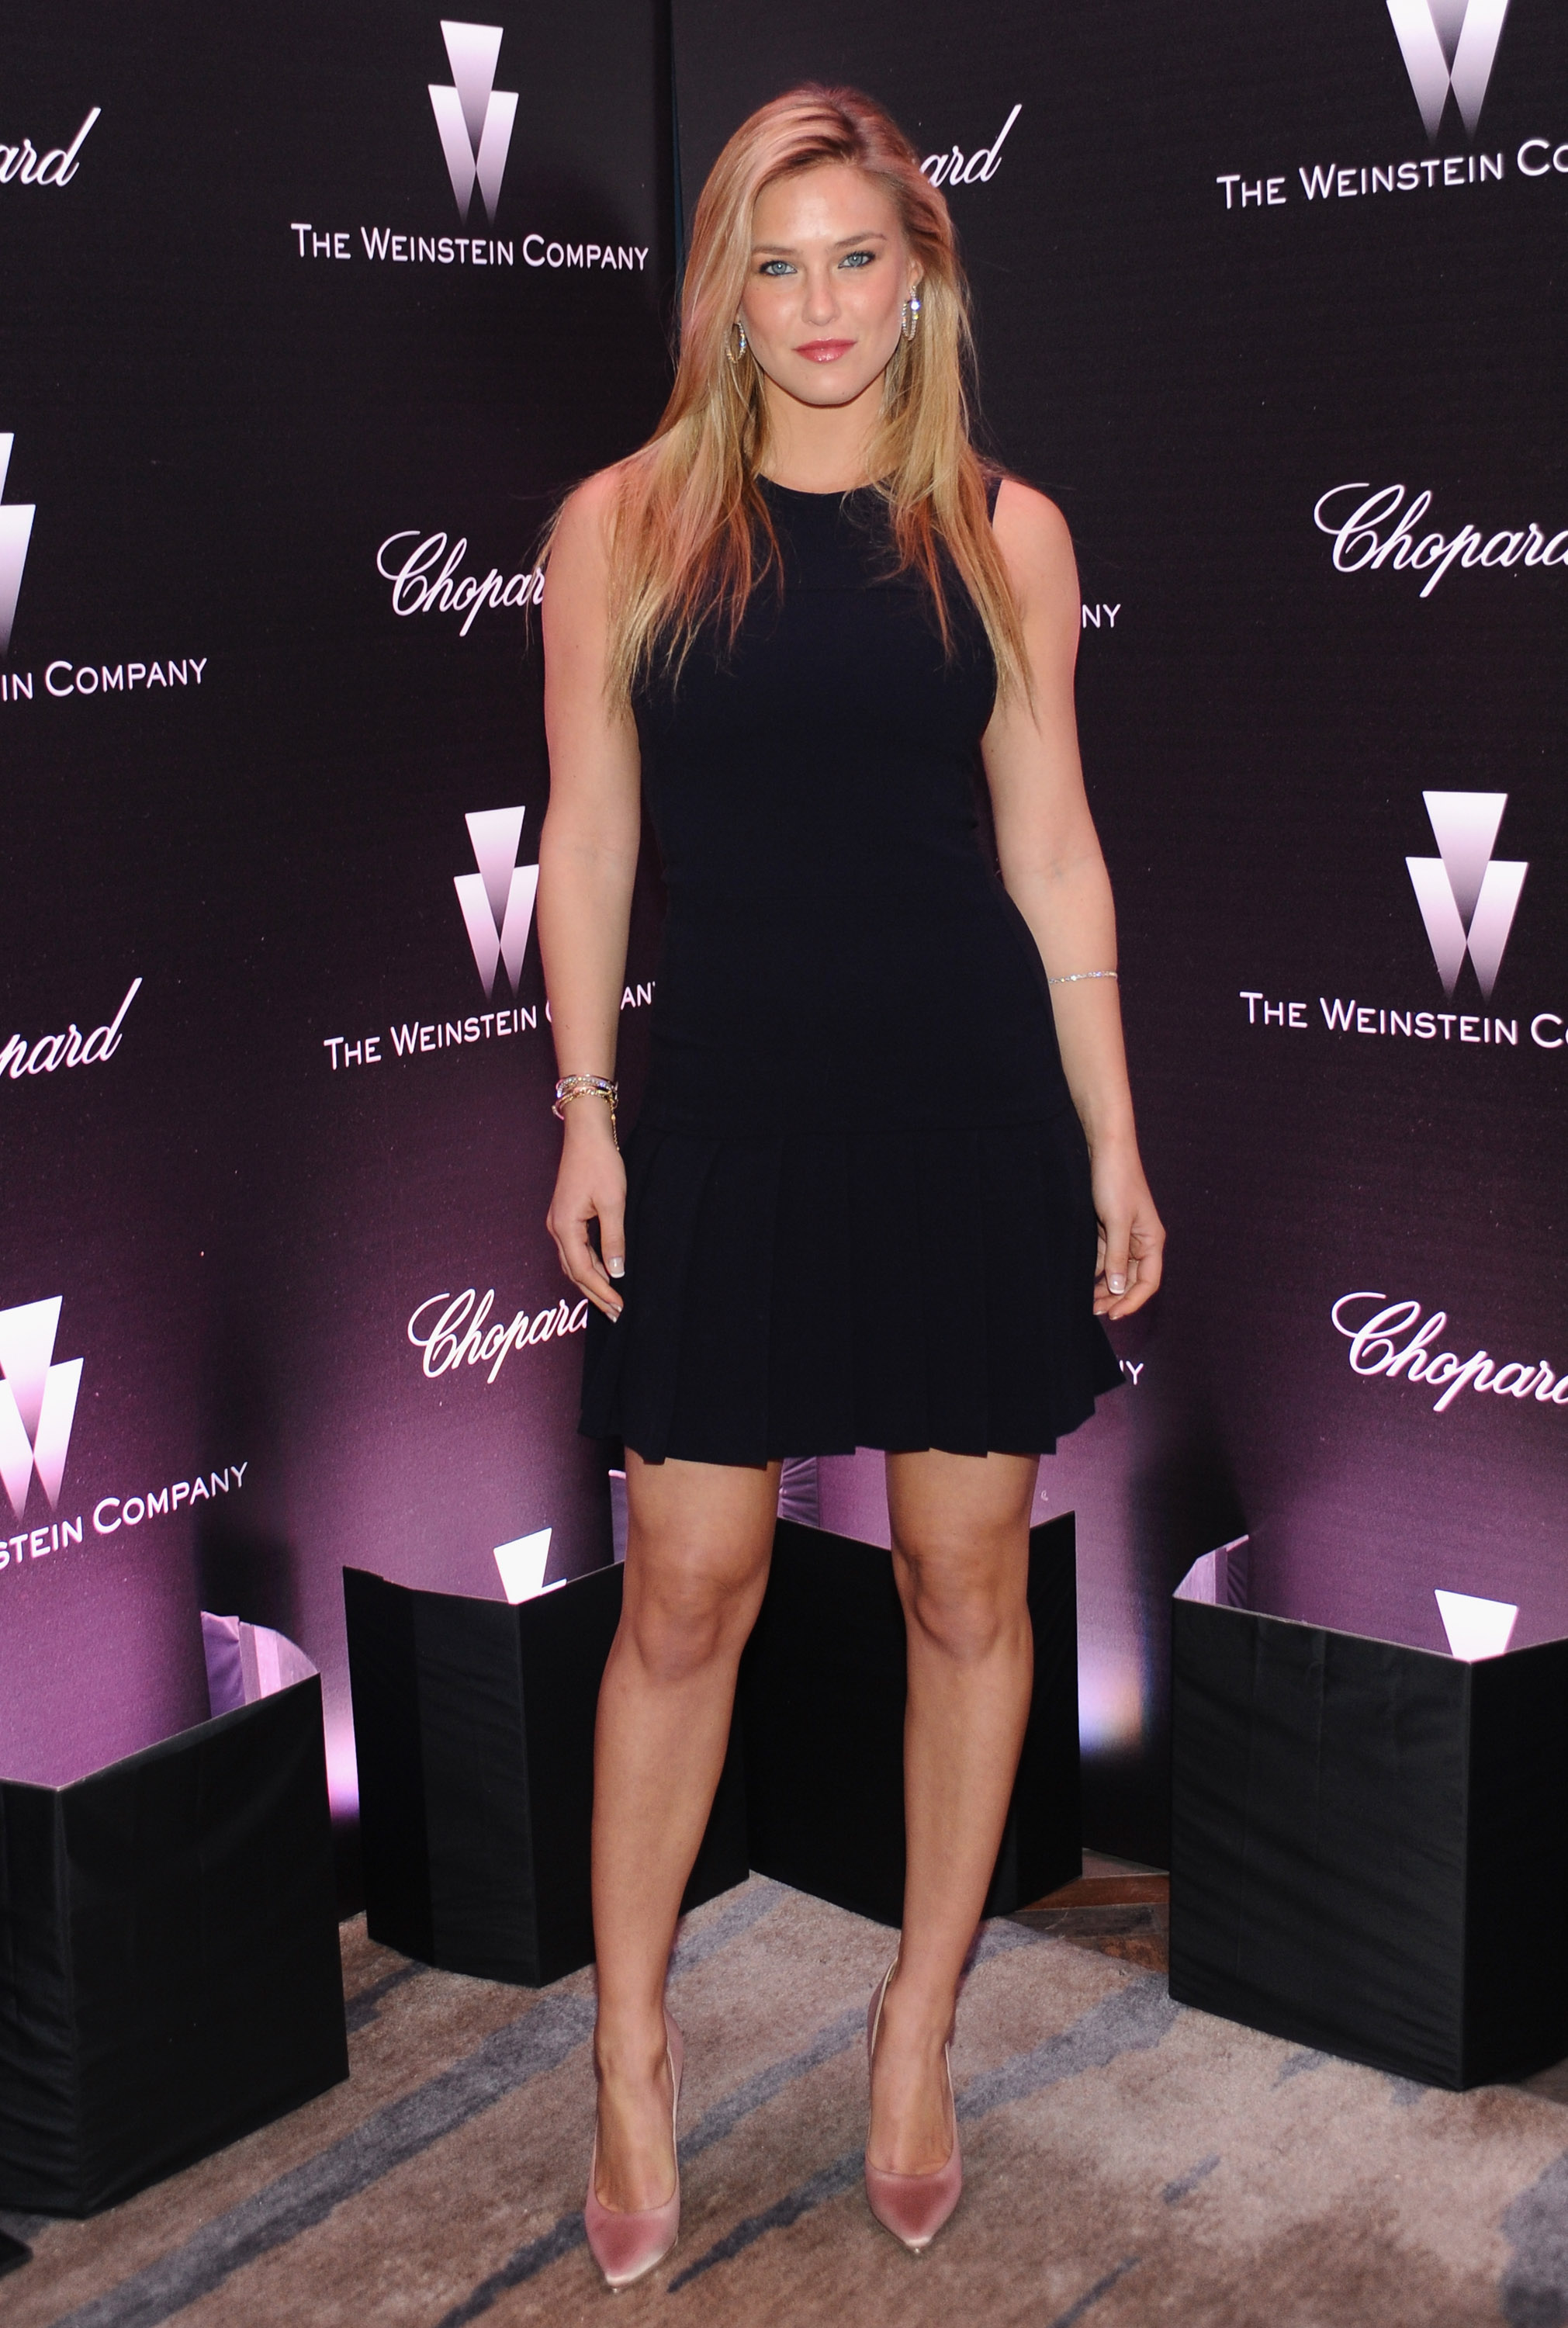 Bar Refaeli went sexy in a short black cocktail dress and